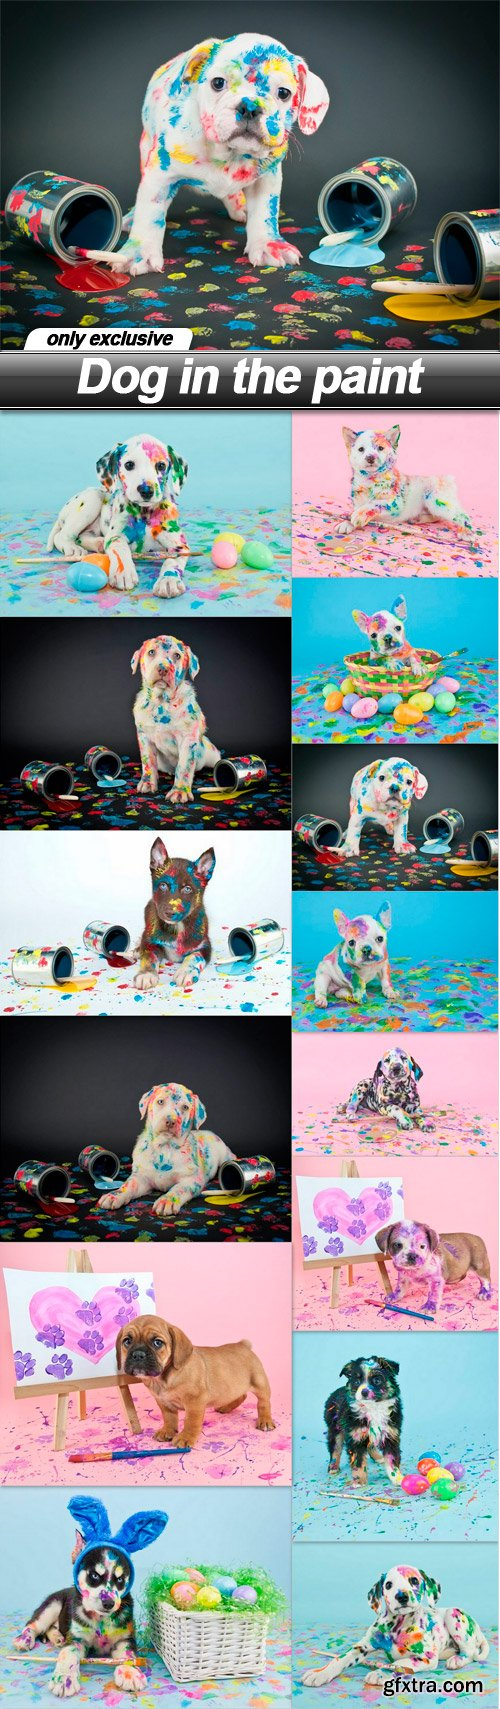 Dog in the paint - 14 UHQ JPEG